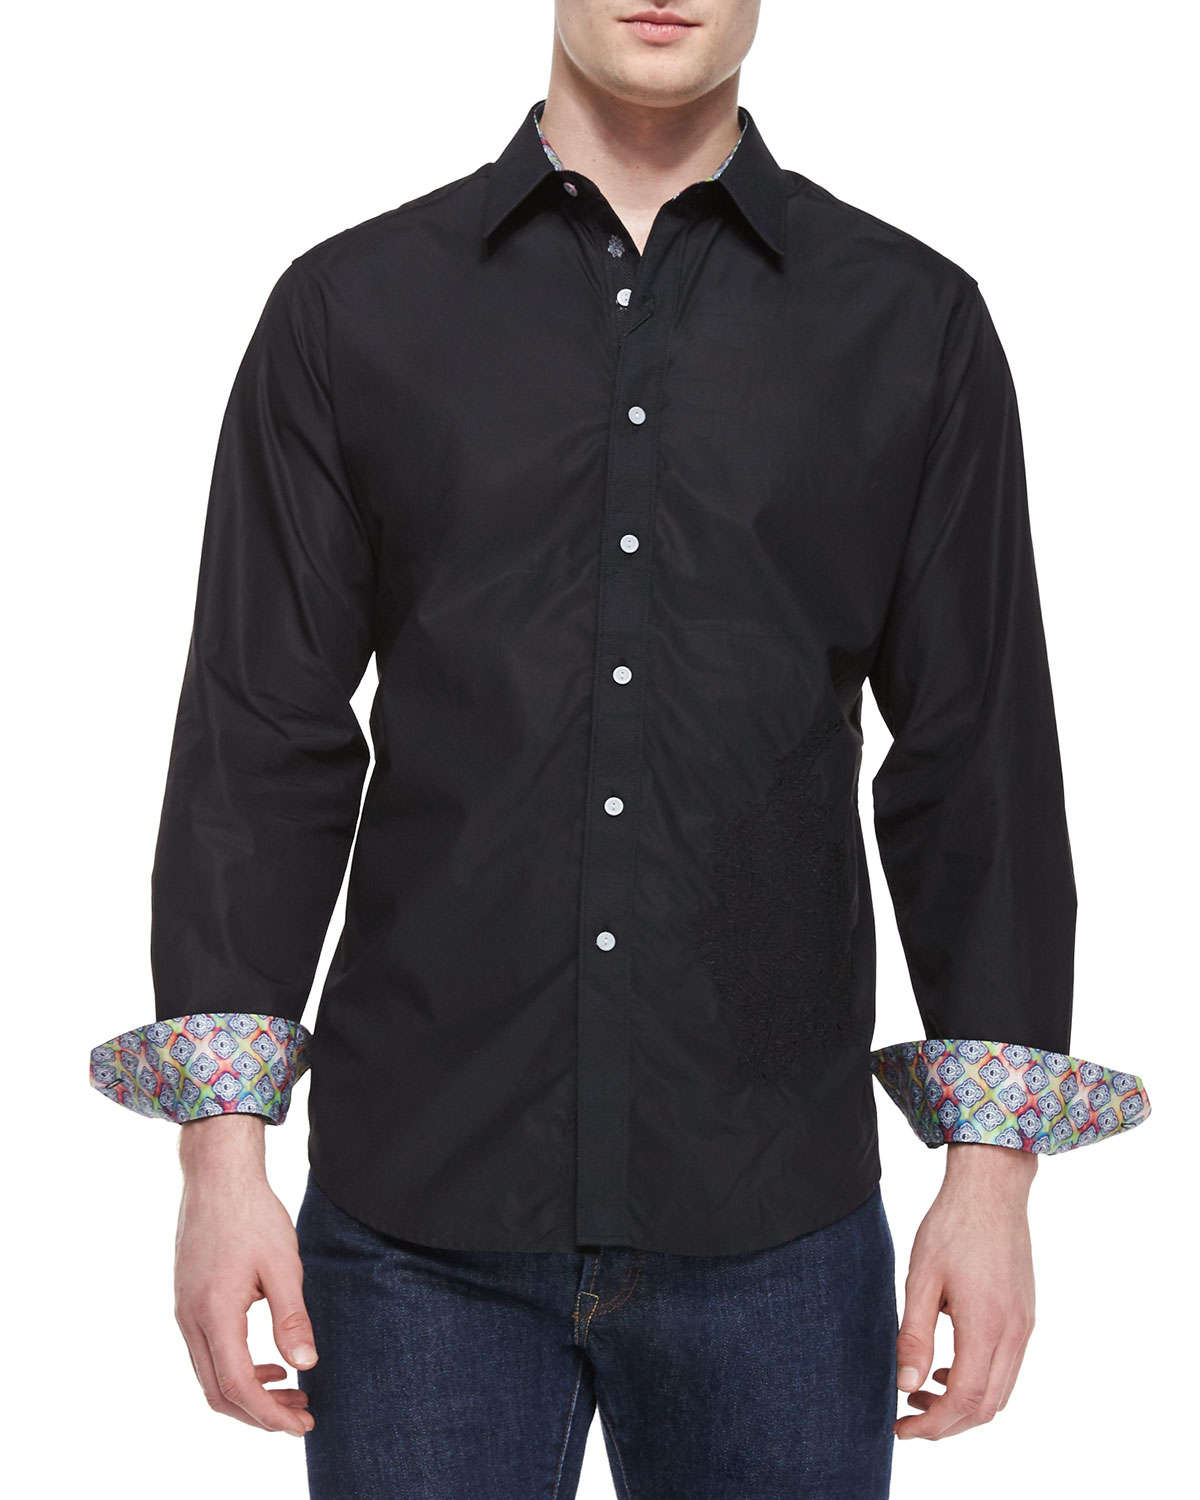 Lyst robert graham tonal embroidery sport shirt in black for Where are robert graham shirts made